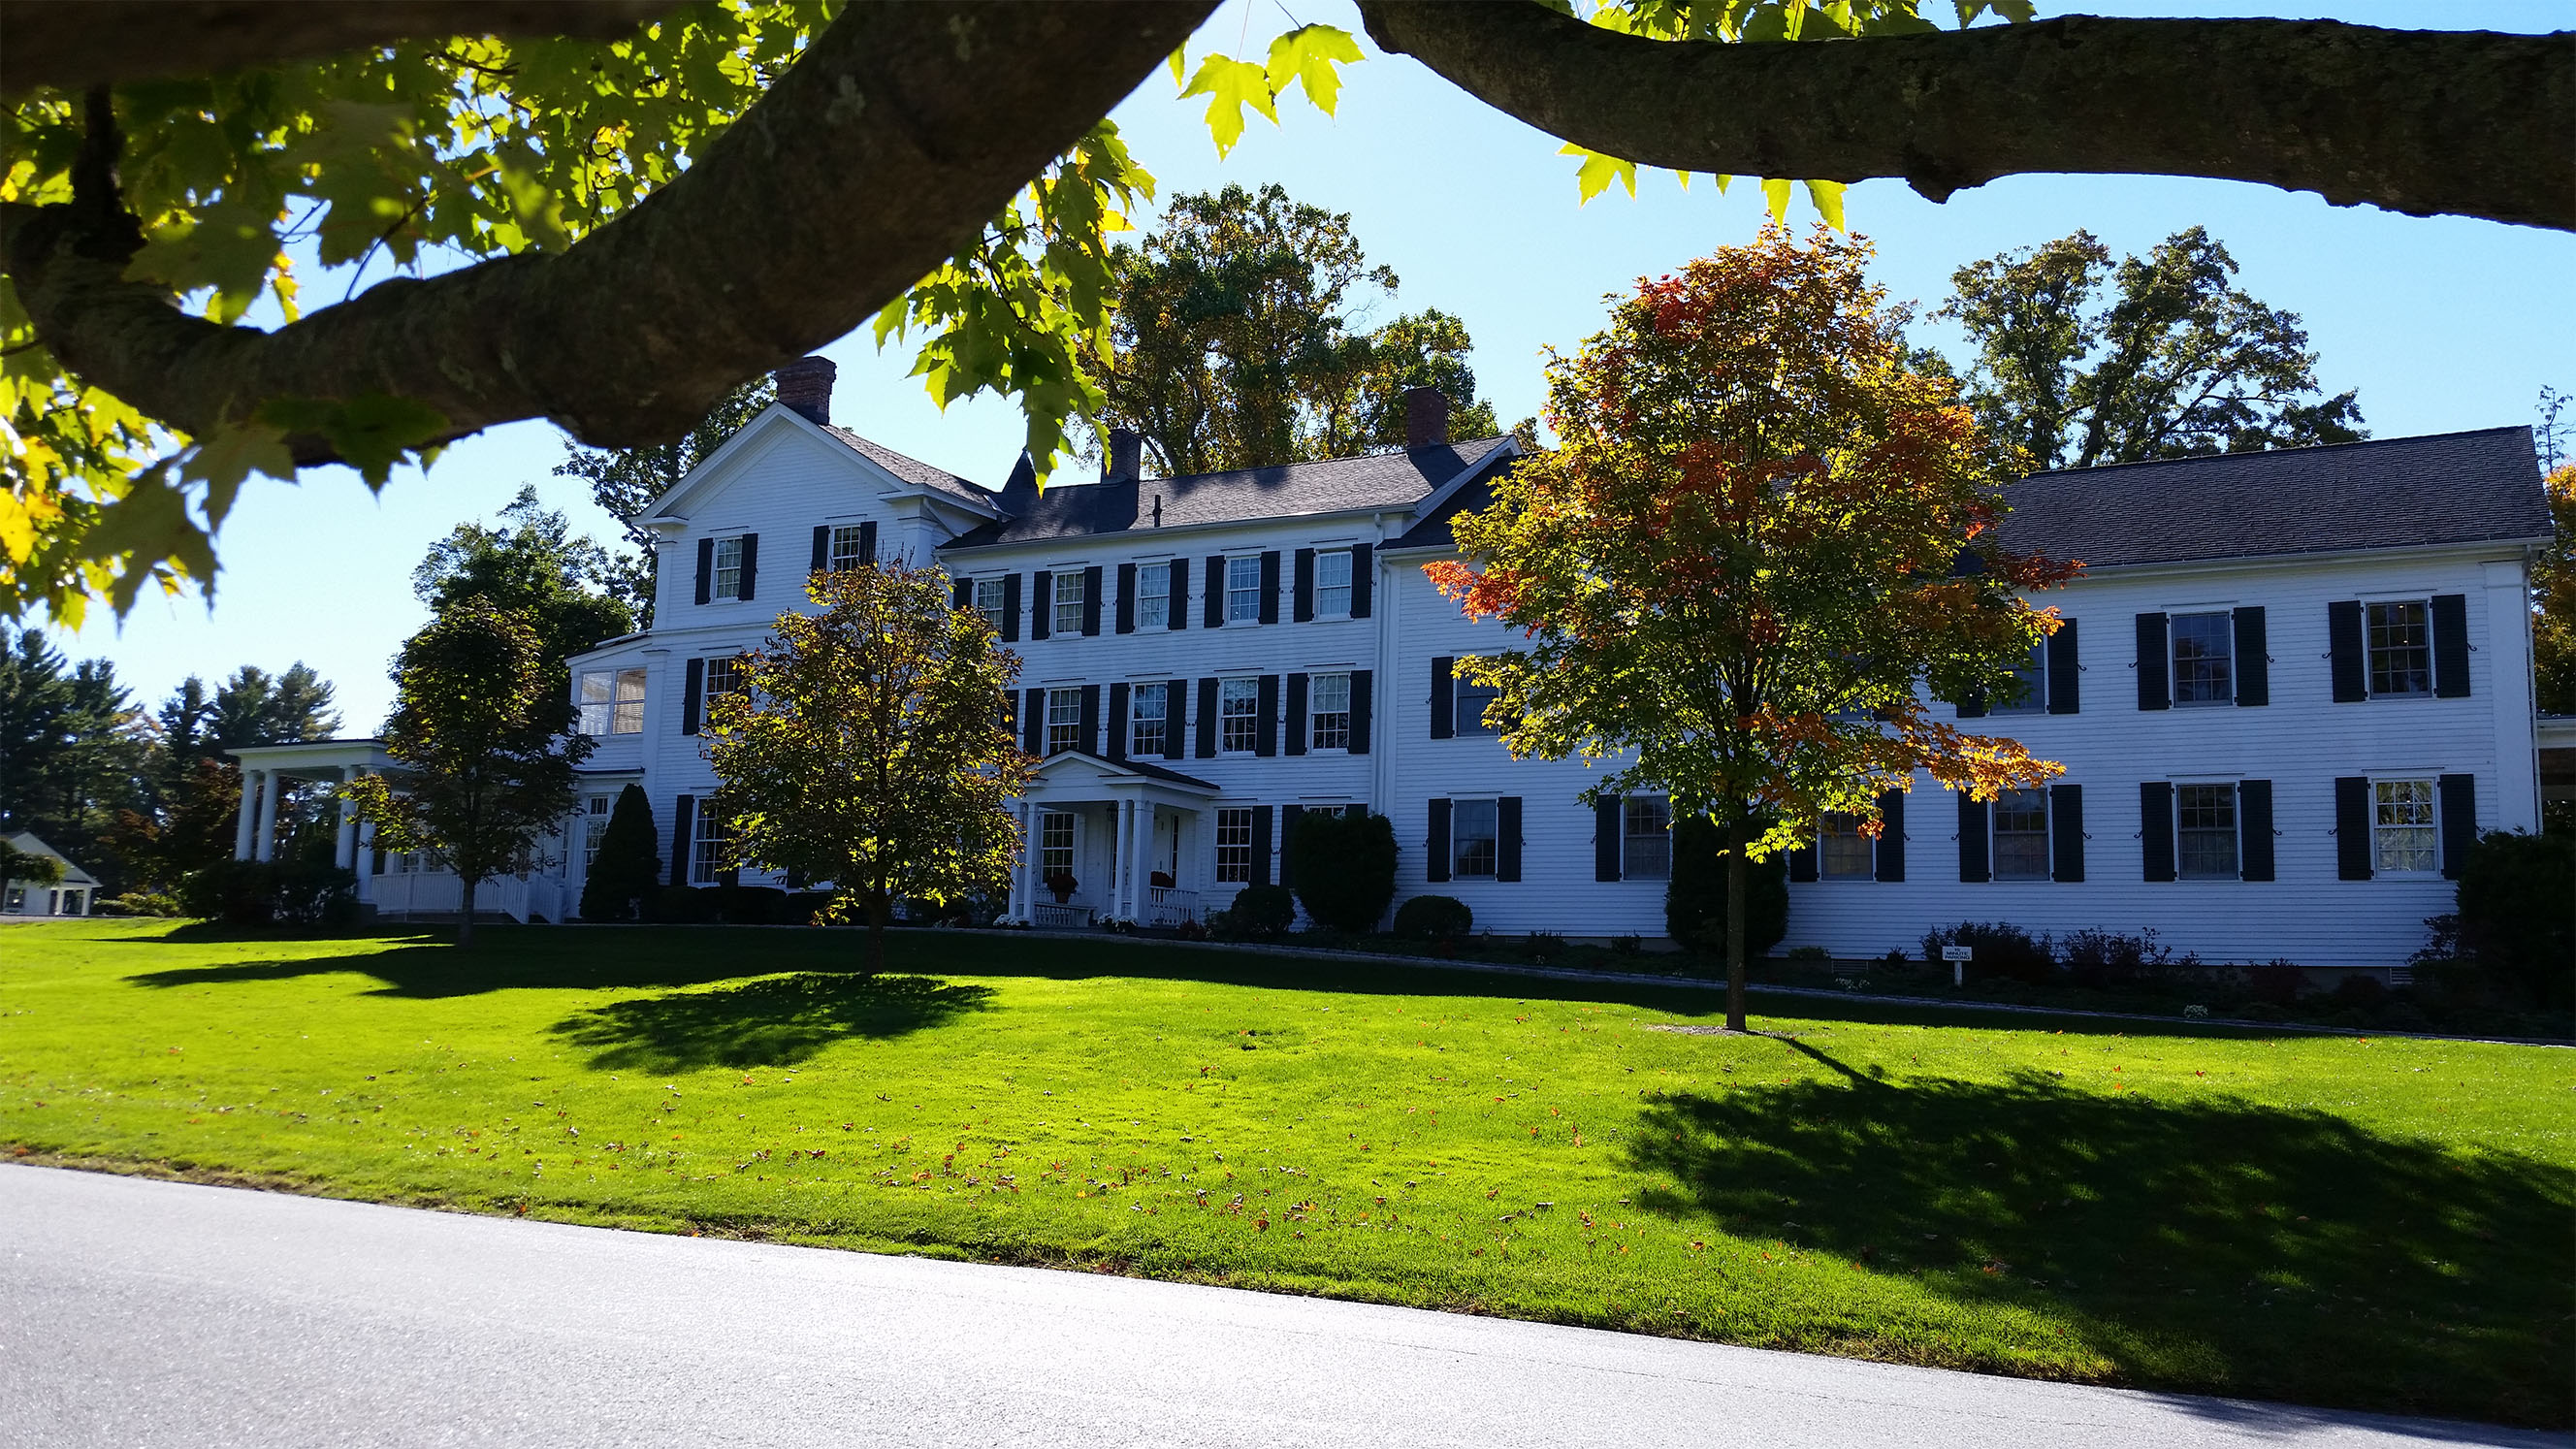 3. Club House (a former Mead Home)